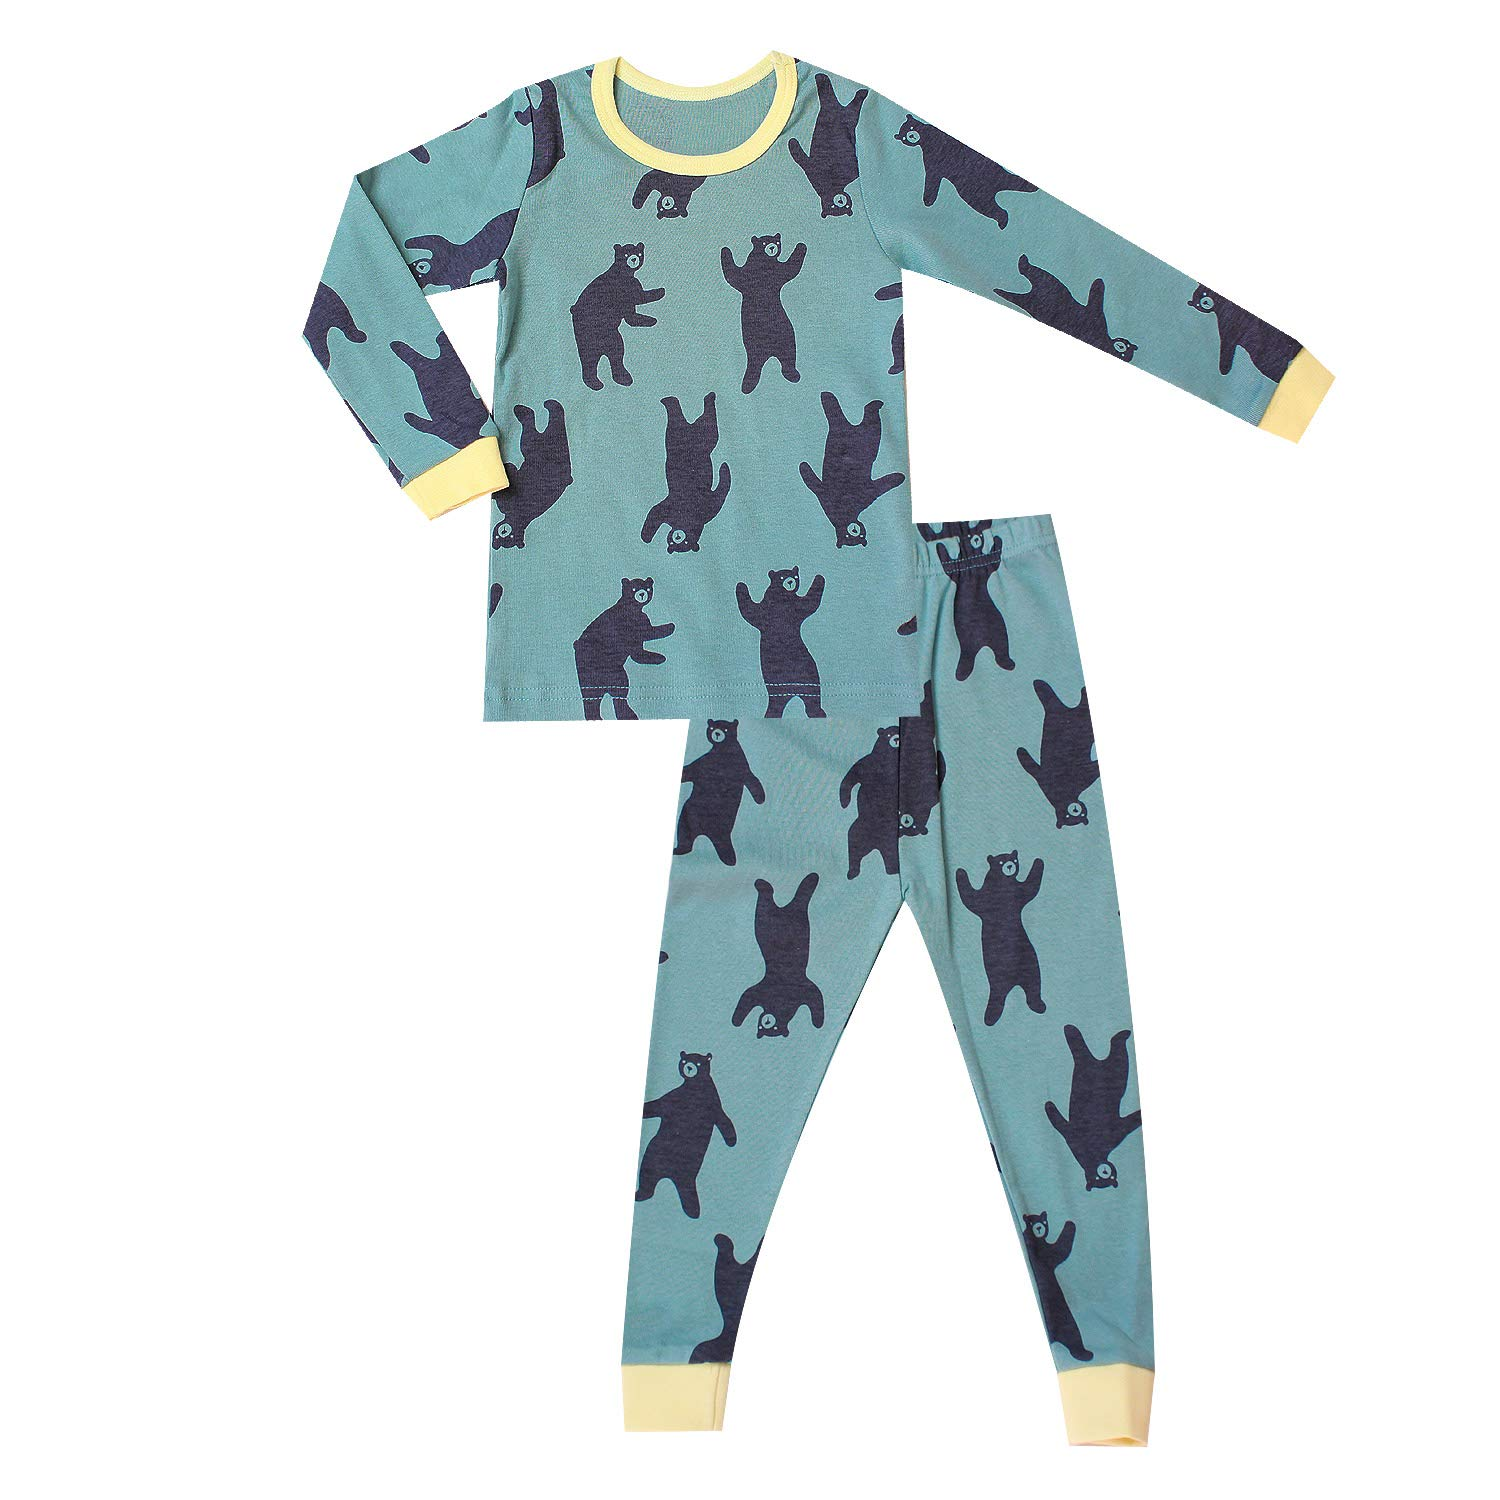 OllCHAENGi Little Boys Girls Kids Cotton Pajama Sleepwear Set Long Sleeve 18M-12Y Navy Bear